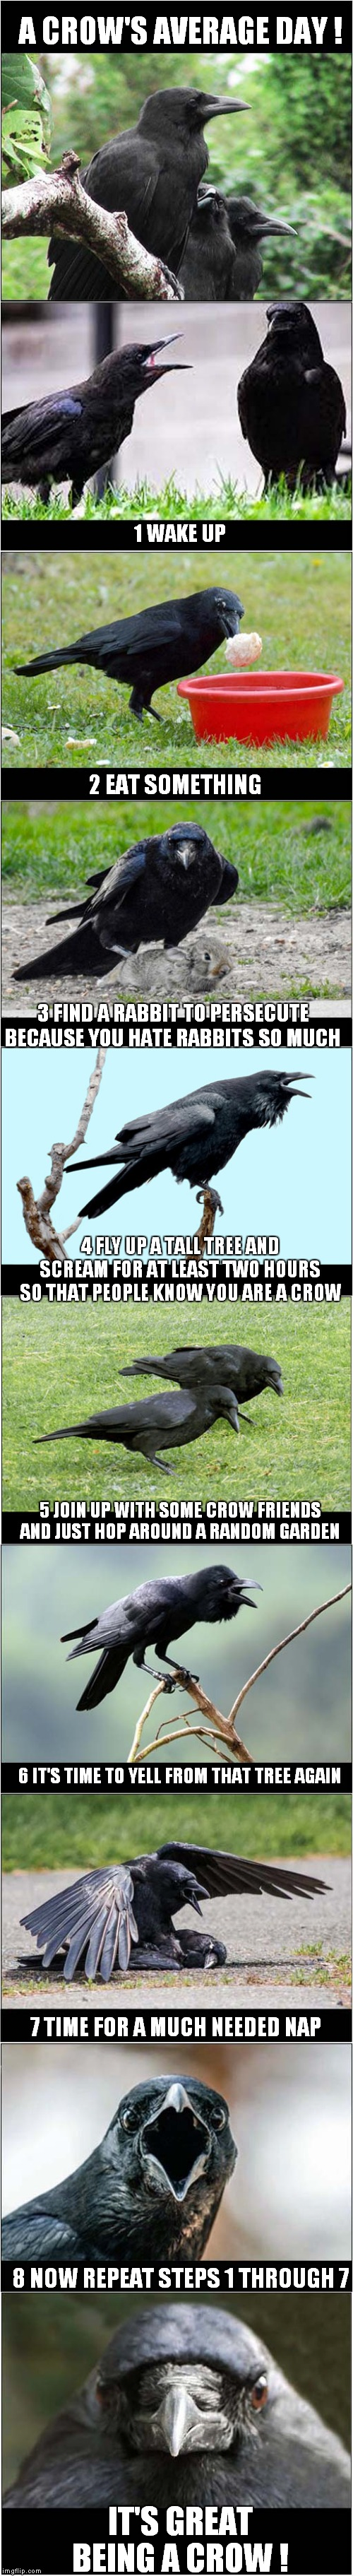 Being A Crow - It's Great ! | A CROW'S AVERAGE DAY ! IT'S GREAT BEING A CROW ! 1 WAKE UP 2 EAT SOMETHING 3 FIND A RABBIT TO PERSECUTE BECAUSE YOU HATE RABBITS SO MUCH 4 F | image tagged in fun,crow,birds | made w/ Imgflip meme maker